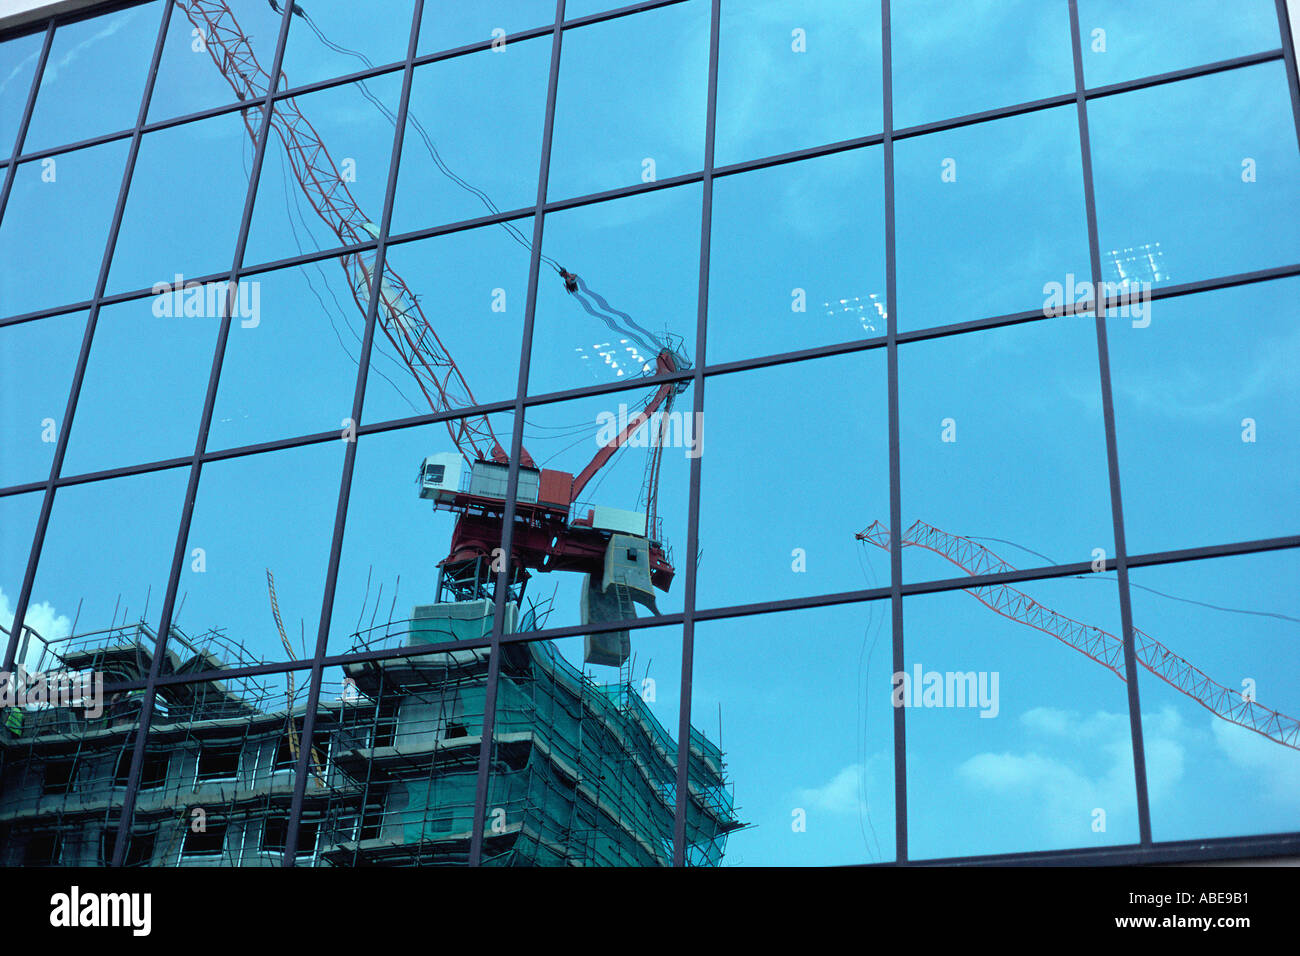 Reflection of construction crane on glass - Stock Image